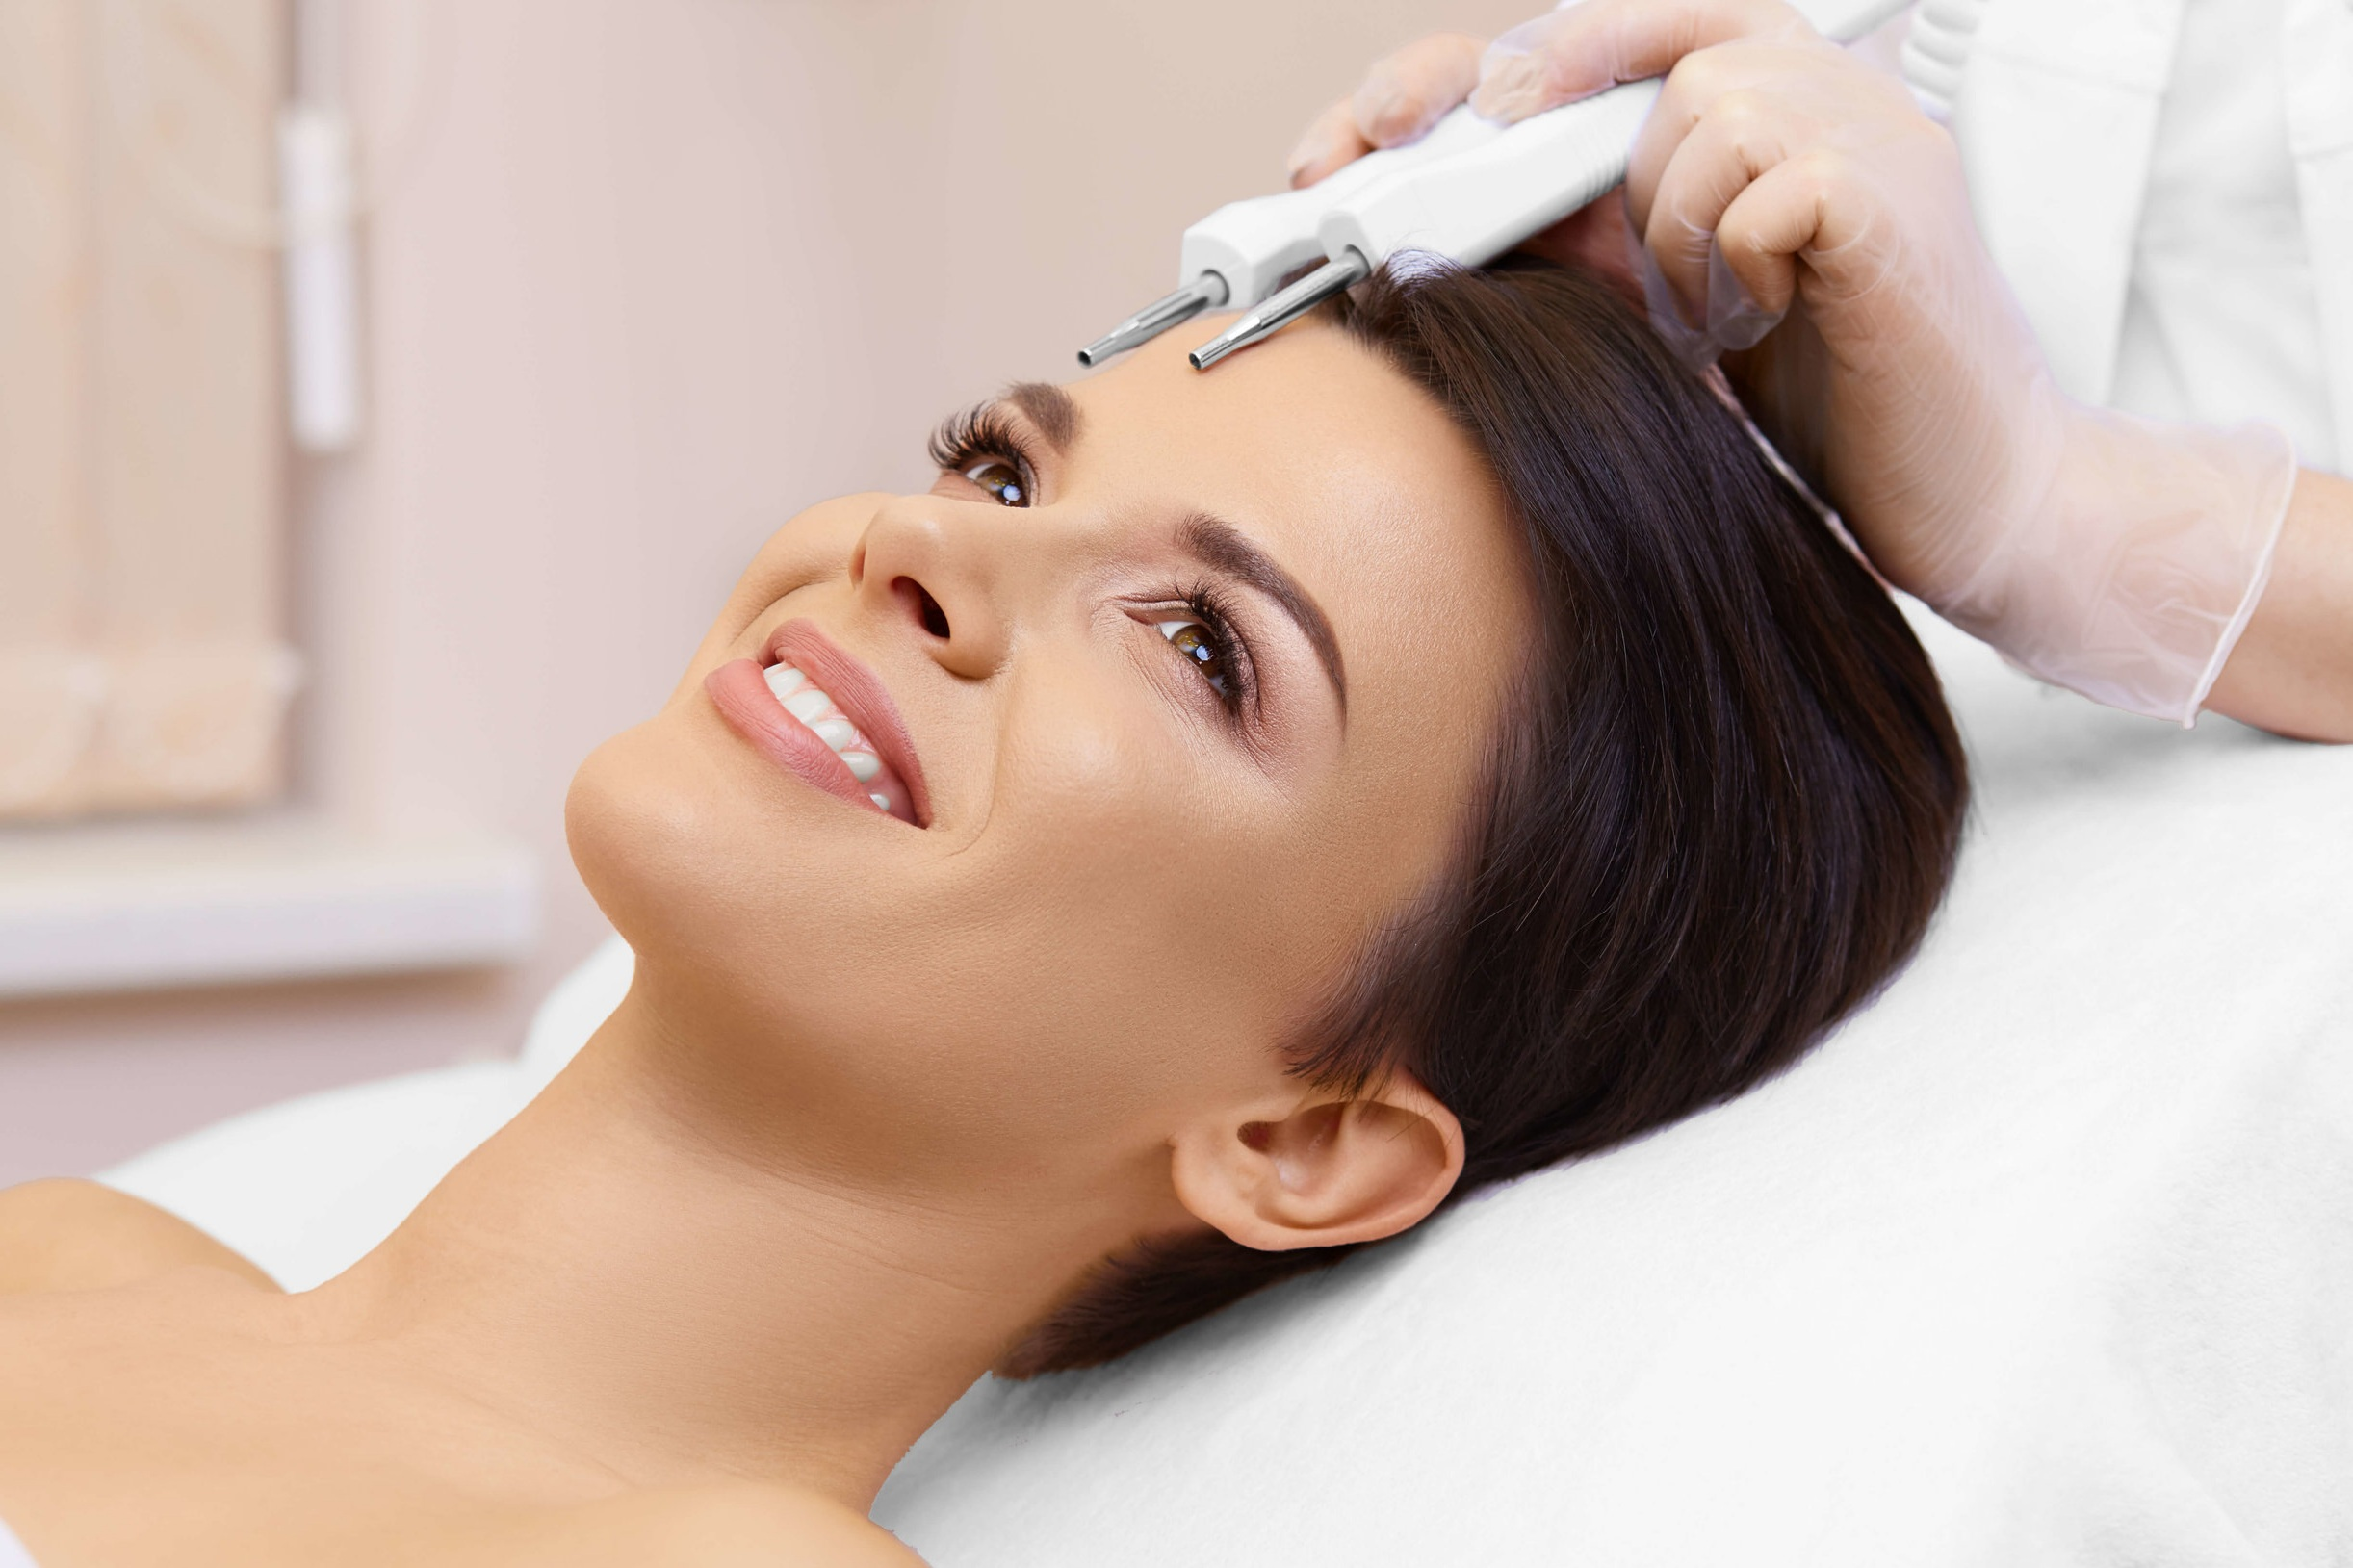 Microcurrent - Revolutionary treatment by a skilled aesthetician enhances the body's natural electrical impulses and cellular repair. Treatment to the face and neck will increase natural collagen, natural elastin, circulation, and cellular repair. Treatment can lead to firmer skin and minimized appearance of fine lines and wrinkles.$185A series of 10 sessionsTo achieve optimal results, 10 treatments are recommended.$1,530 for the first 9 sessions, the 10th session is free